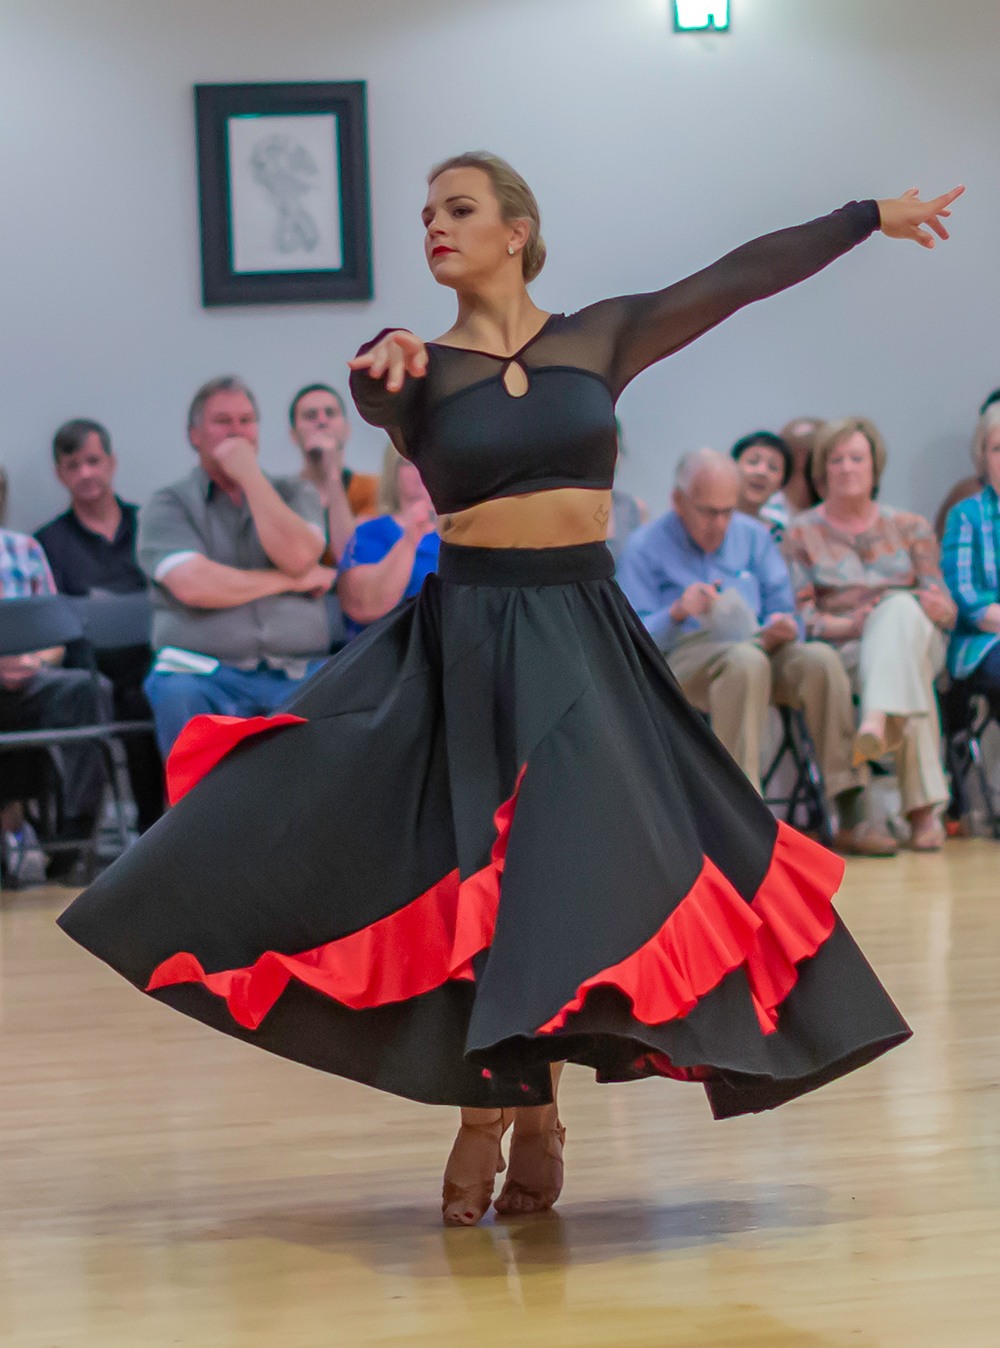 Rachel Morrison at Ultimate Ballroom dance studio